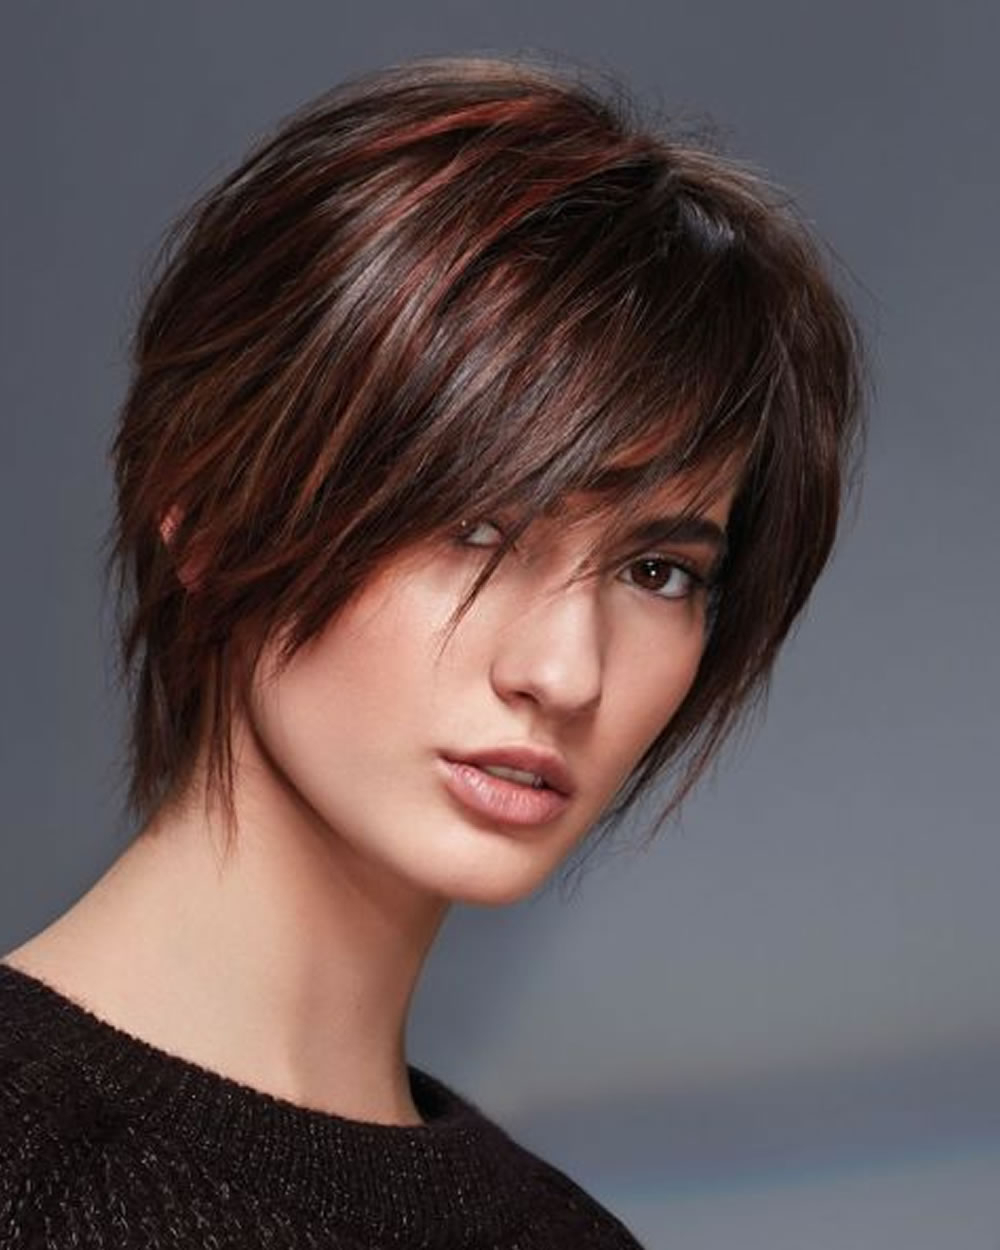 Top 20 Matchless Short Haircuts For Women With Round Faces 2018 2019 Throughout Women Short Haircuts For Round Faces (View 25 of 25)